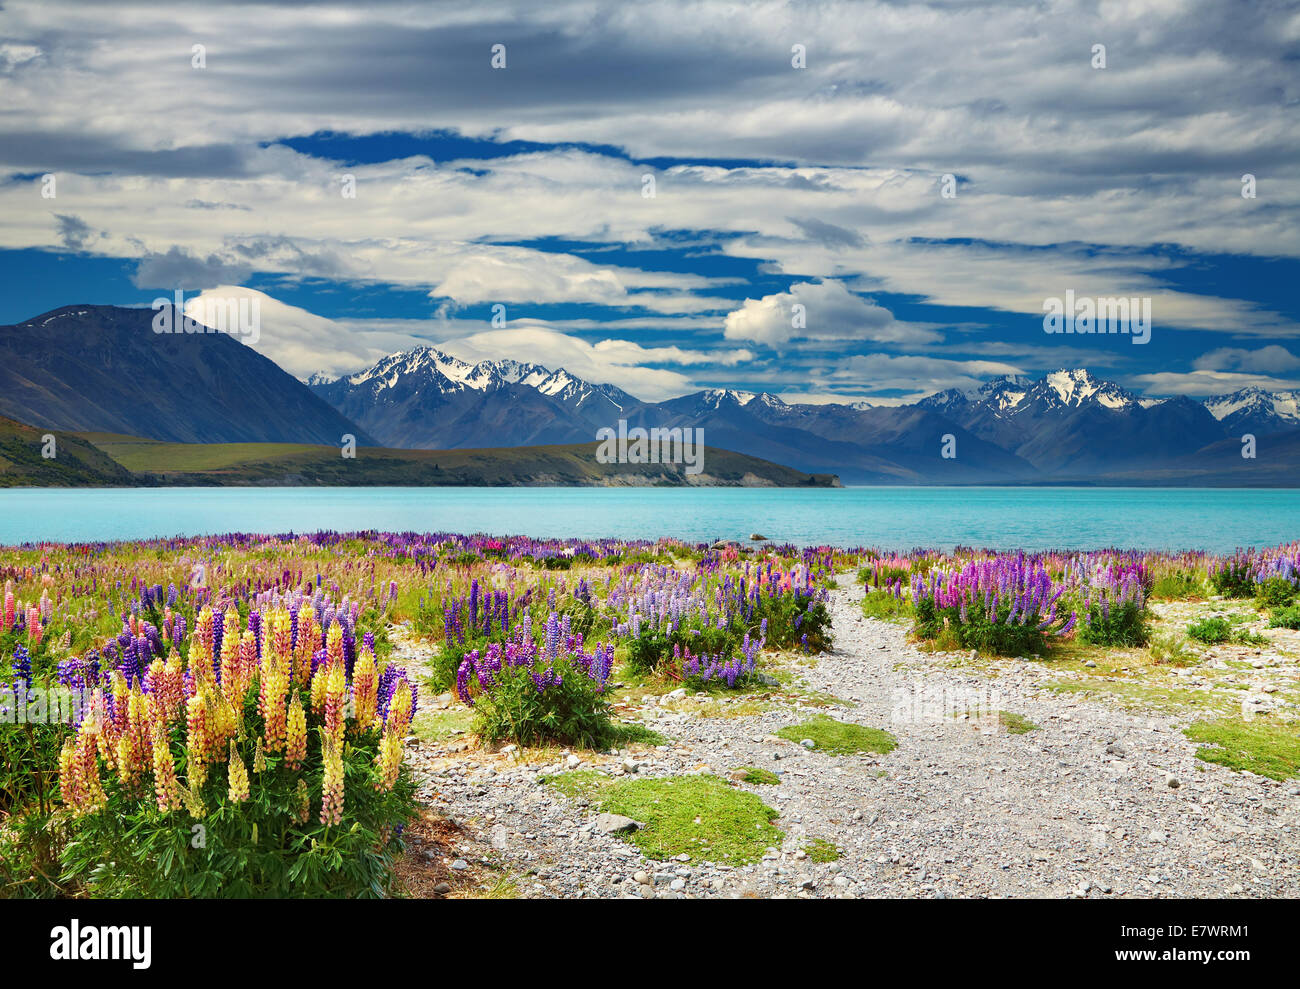 Le Lac Tekapo, Alpes du Sud, Nouvelle-Zélande Photo Stock